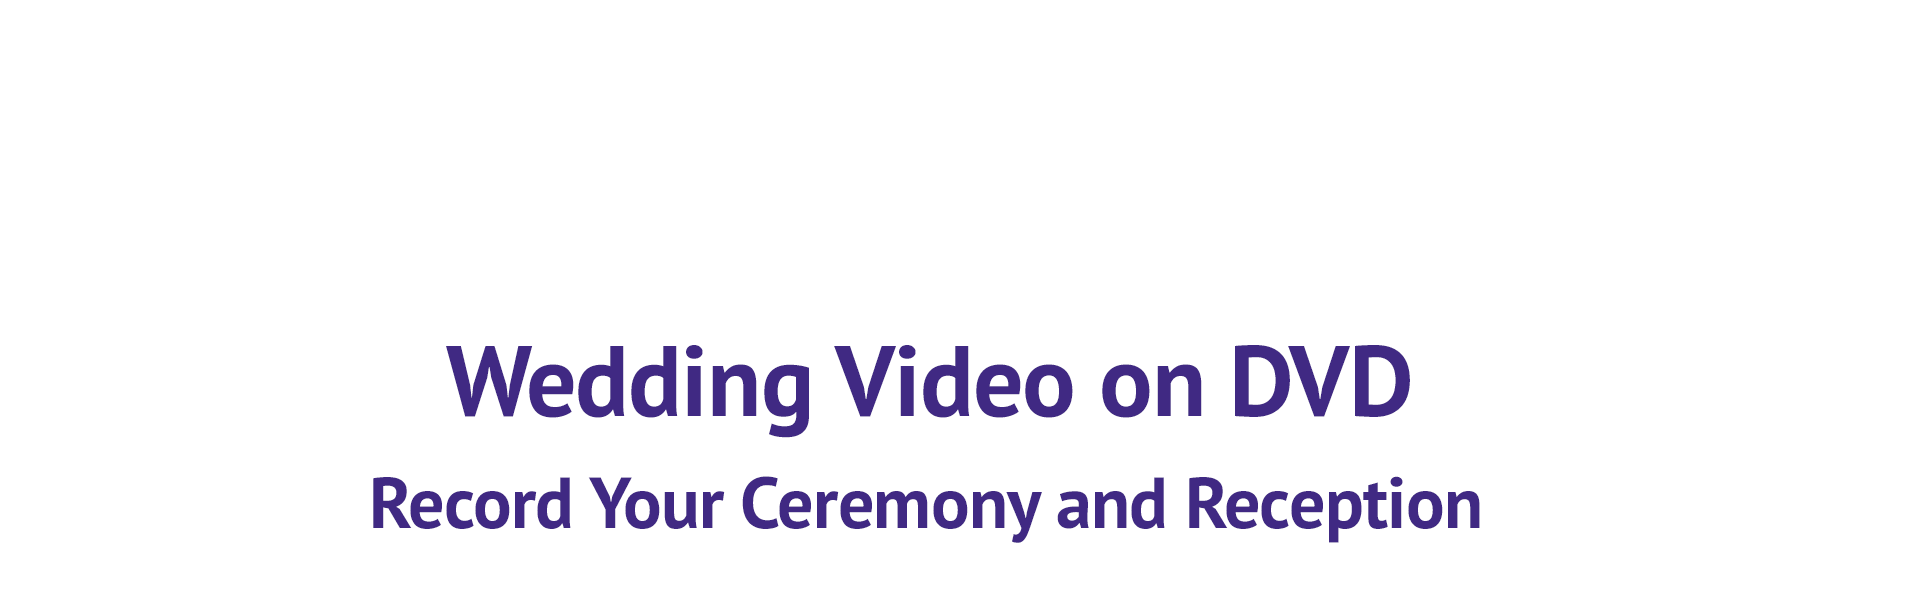 Wedding Video on DVD Record Your Ceremony and Reception